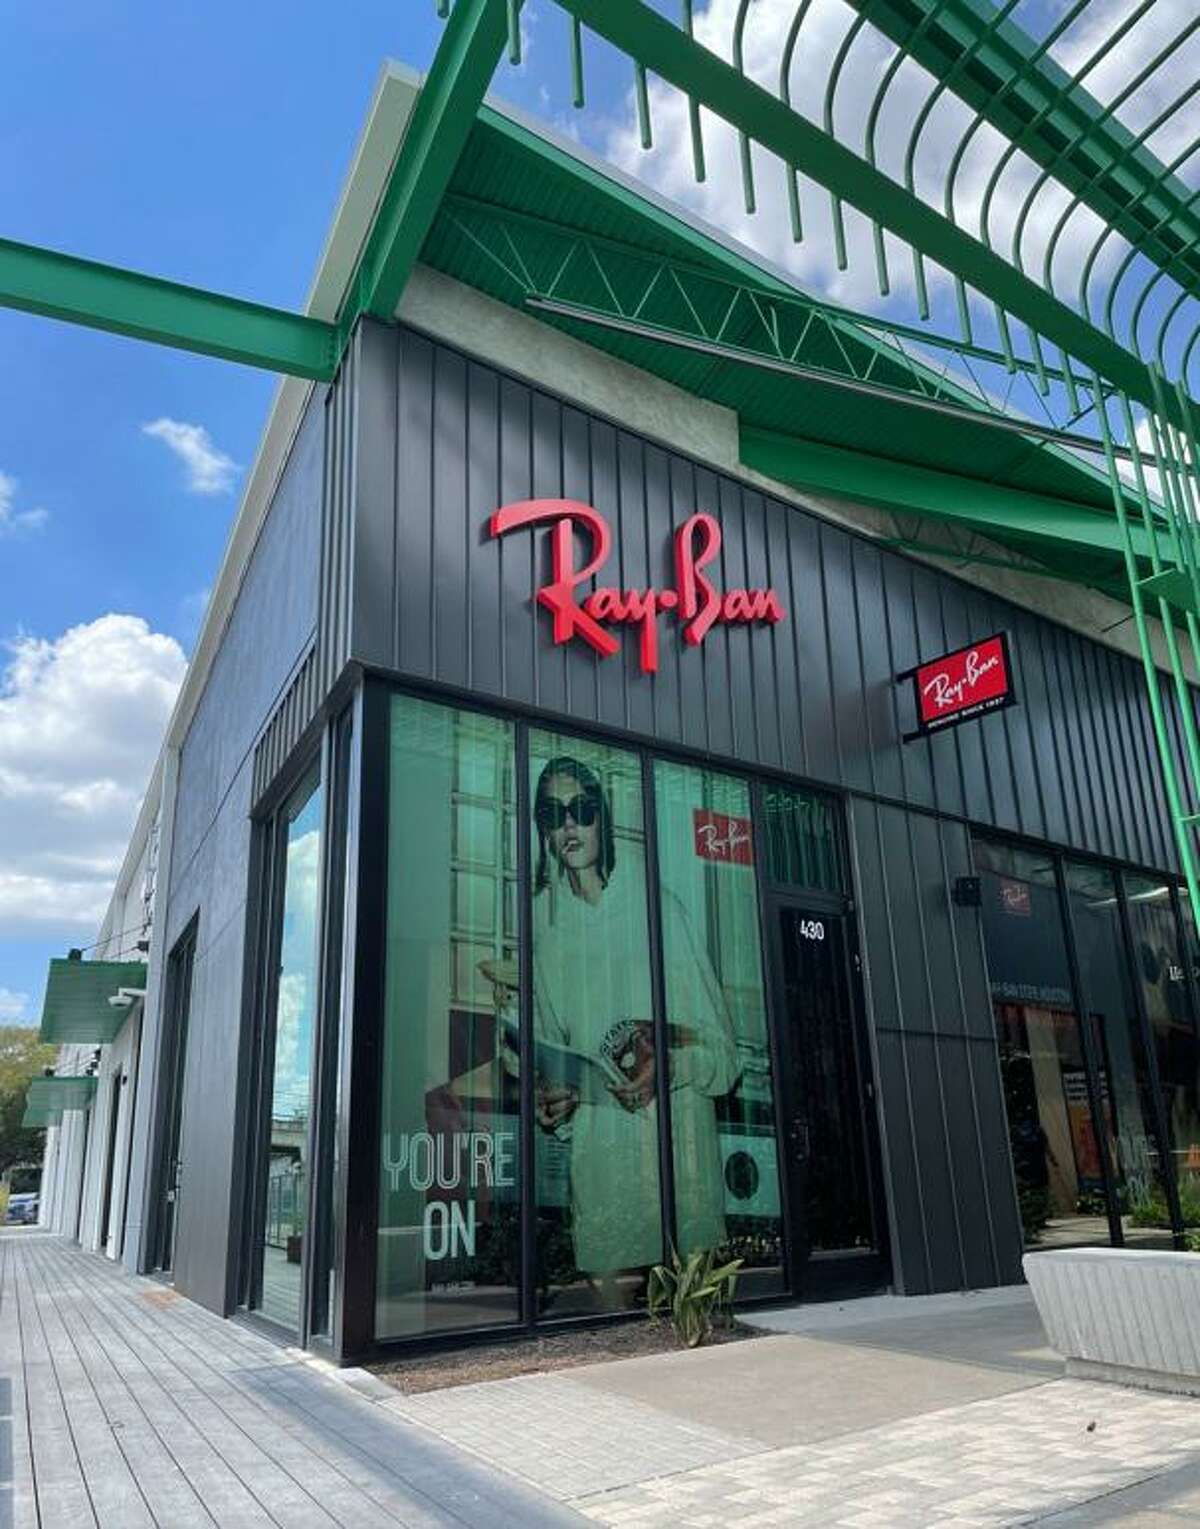 Ray-Ban has a new store in M-K-T at 600 N. Shepherd in the Heights.